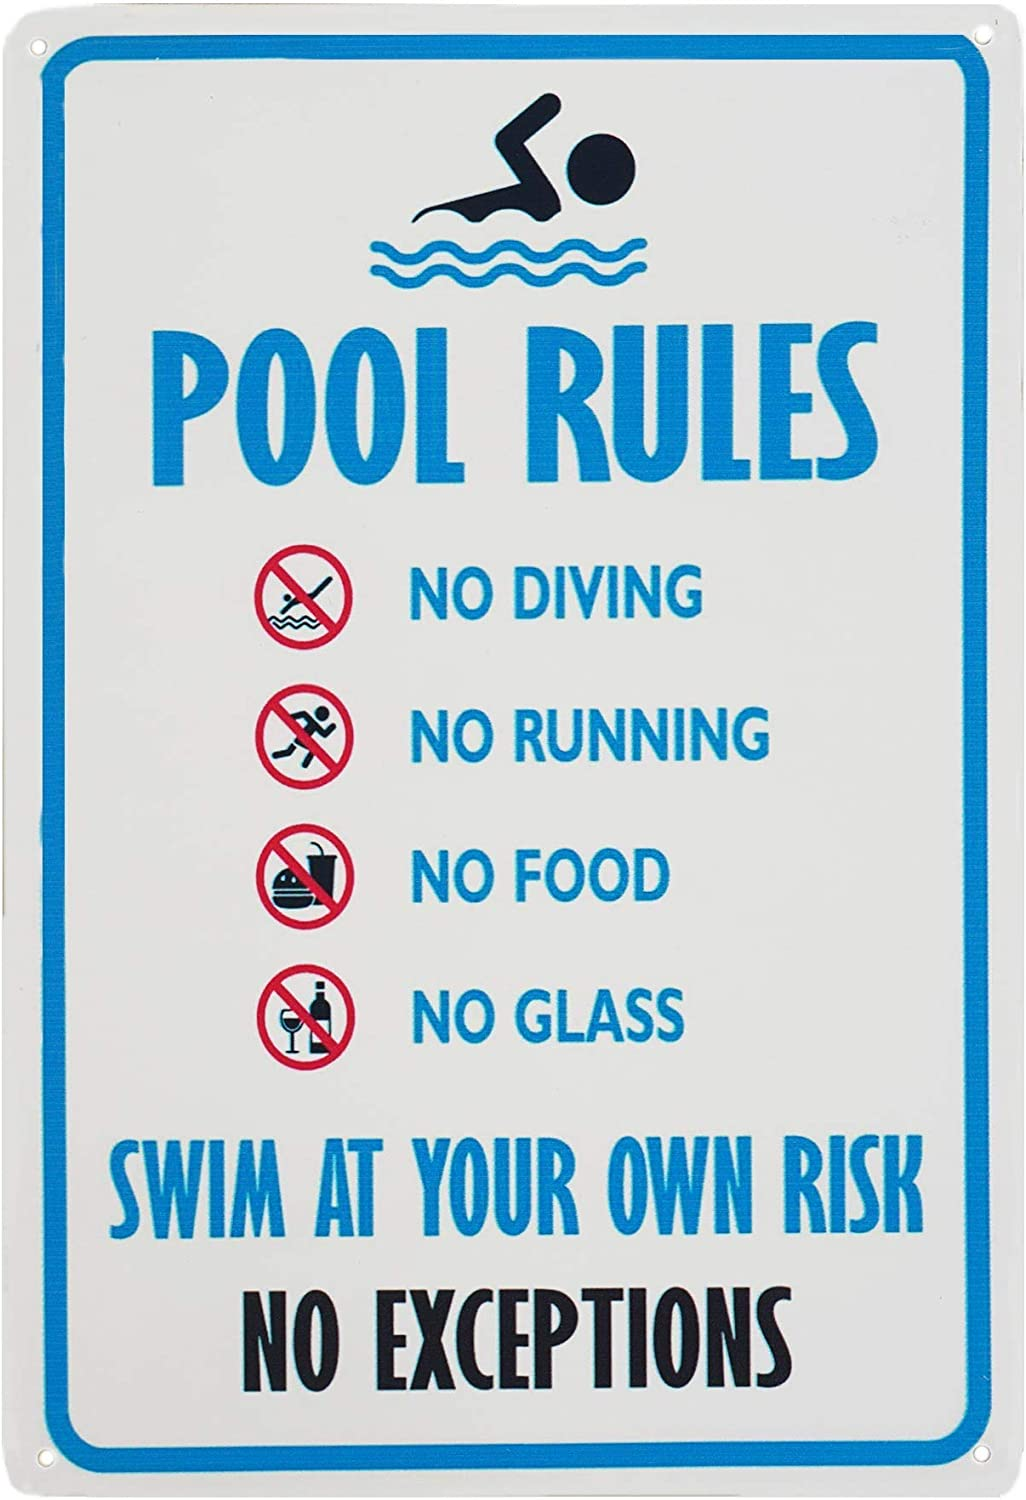 Bit SIGNSHM Safety No Diving No Running No Food No Glass Swim at Your Own Rish No Exceptions Pool Rules Retro Metal Tin Sign Plaque Poster Wall Decor Art Shabby Chic Gift Suitable 12x8 Inch